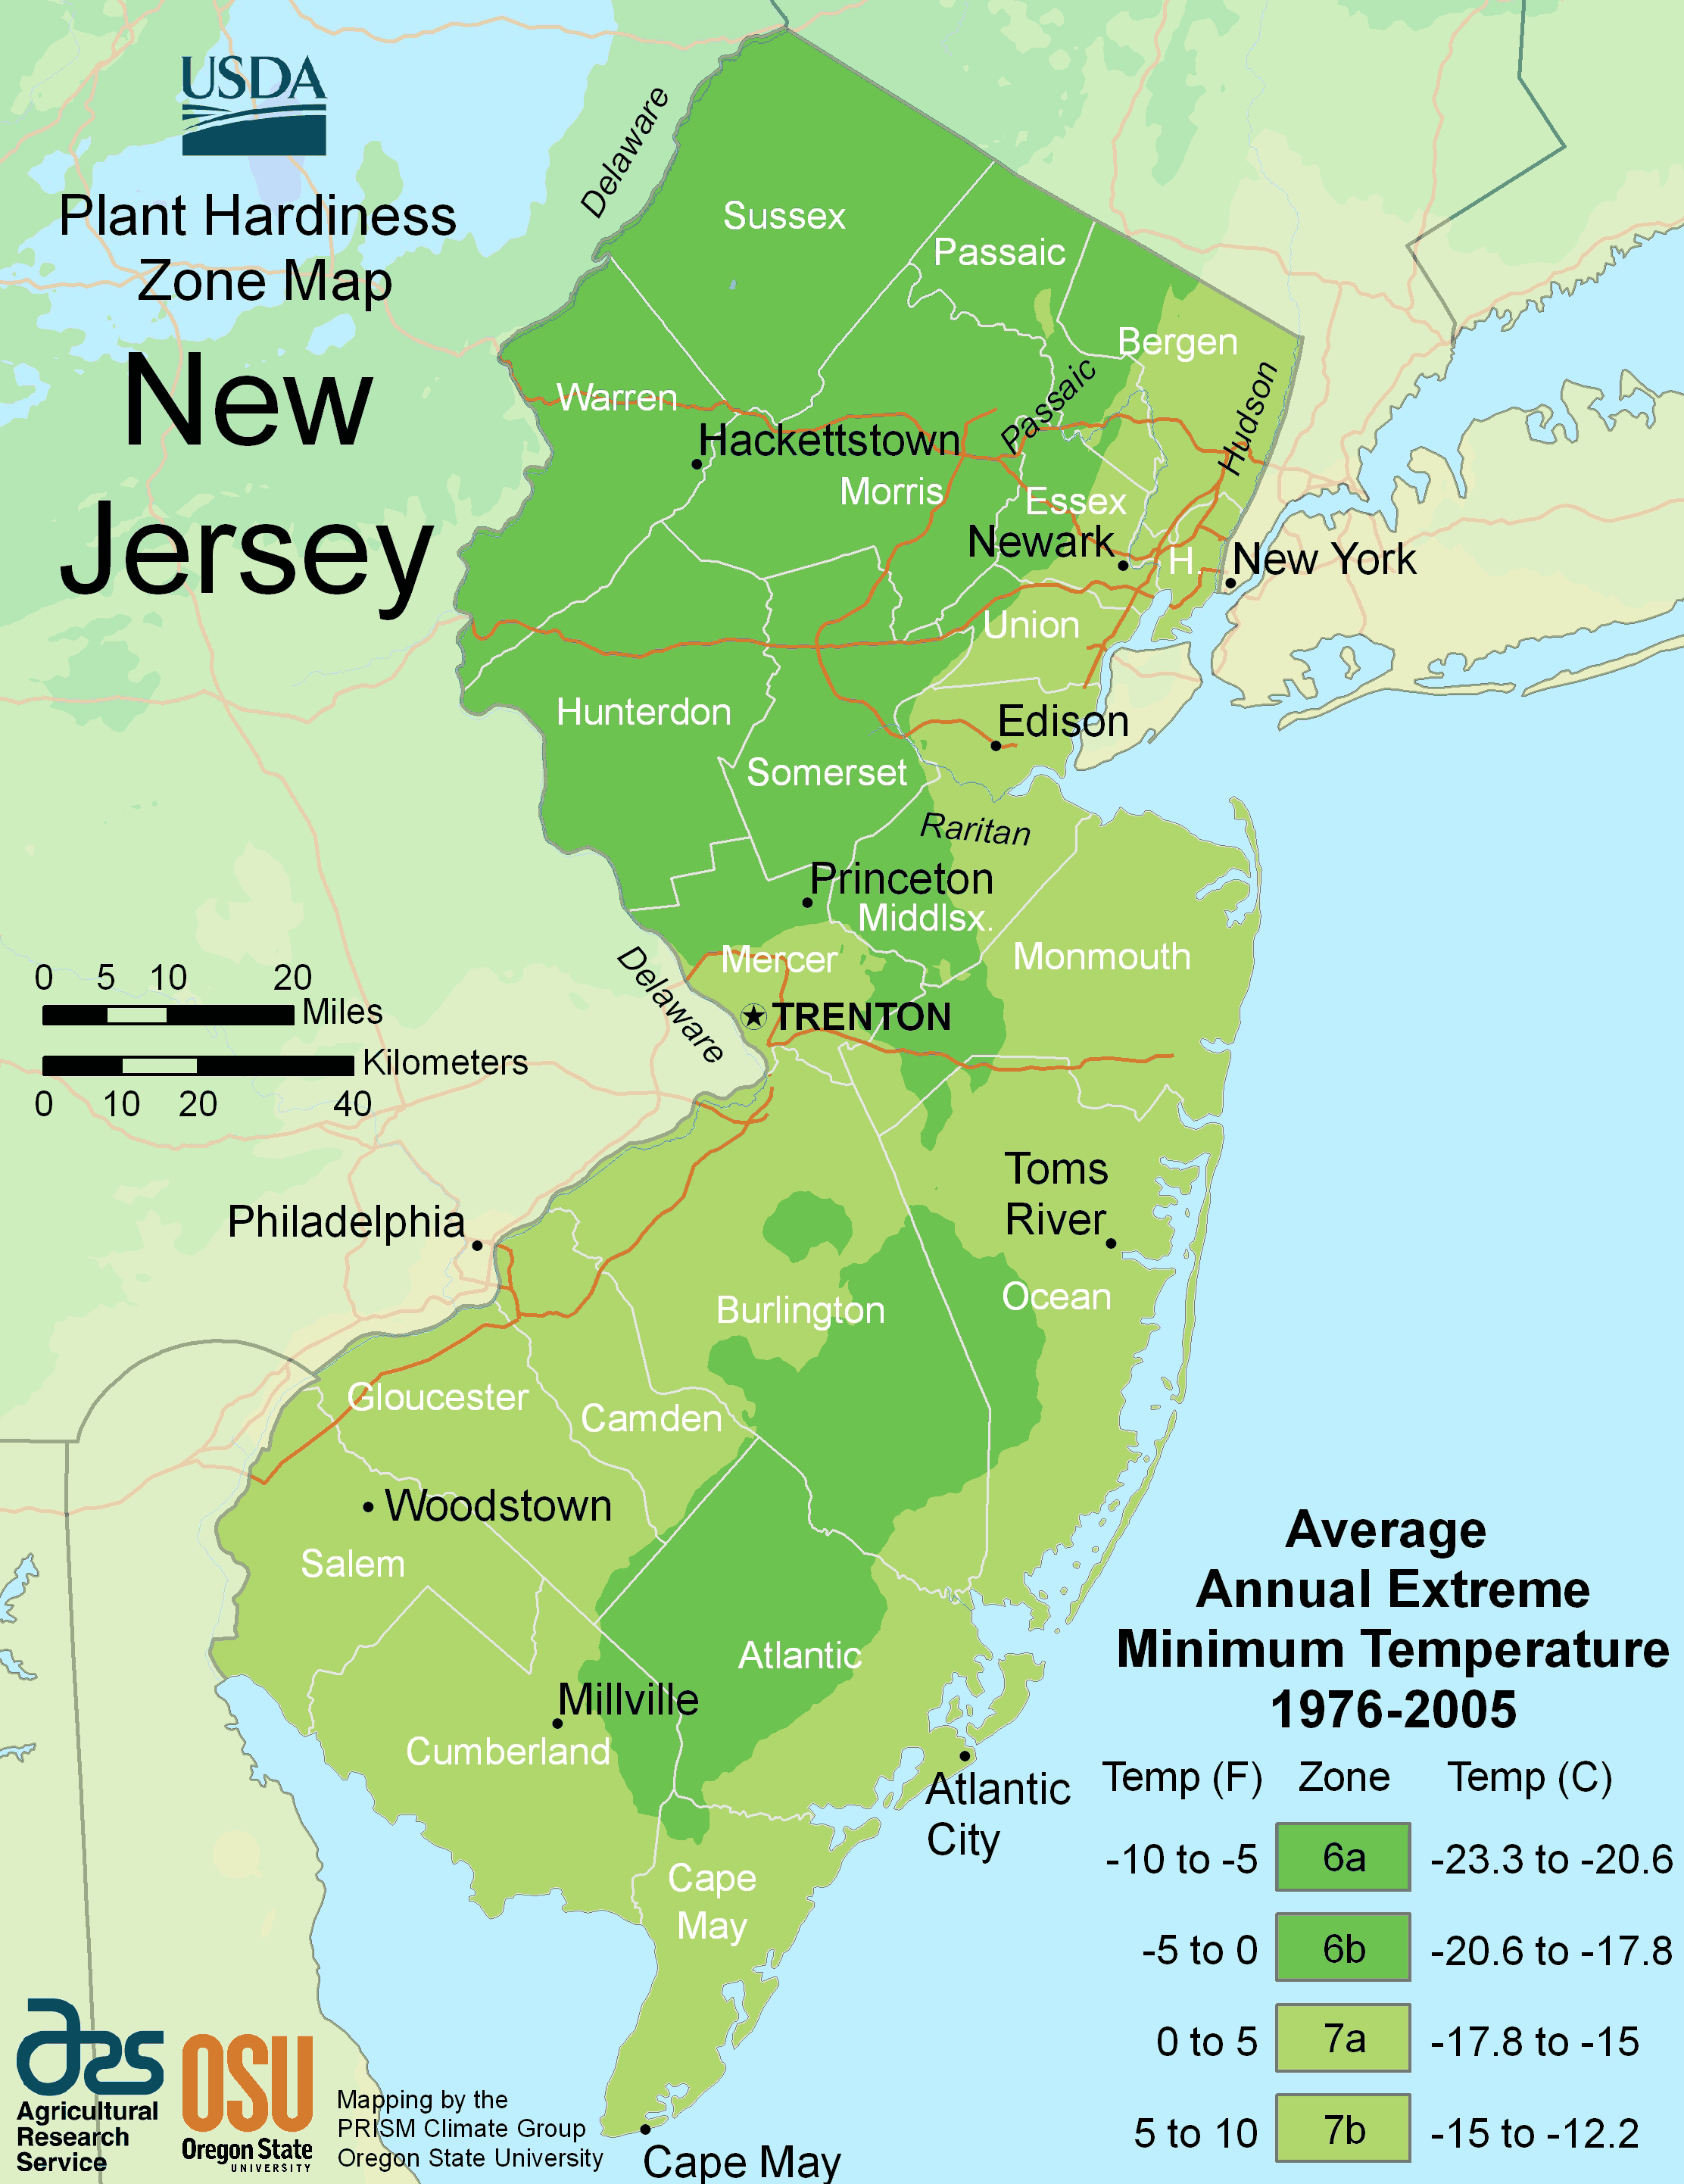 New Jersey Plant Hardiness Zone Map